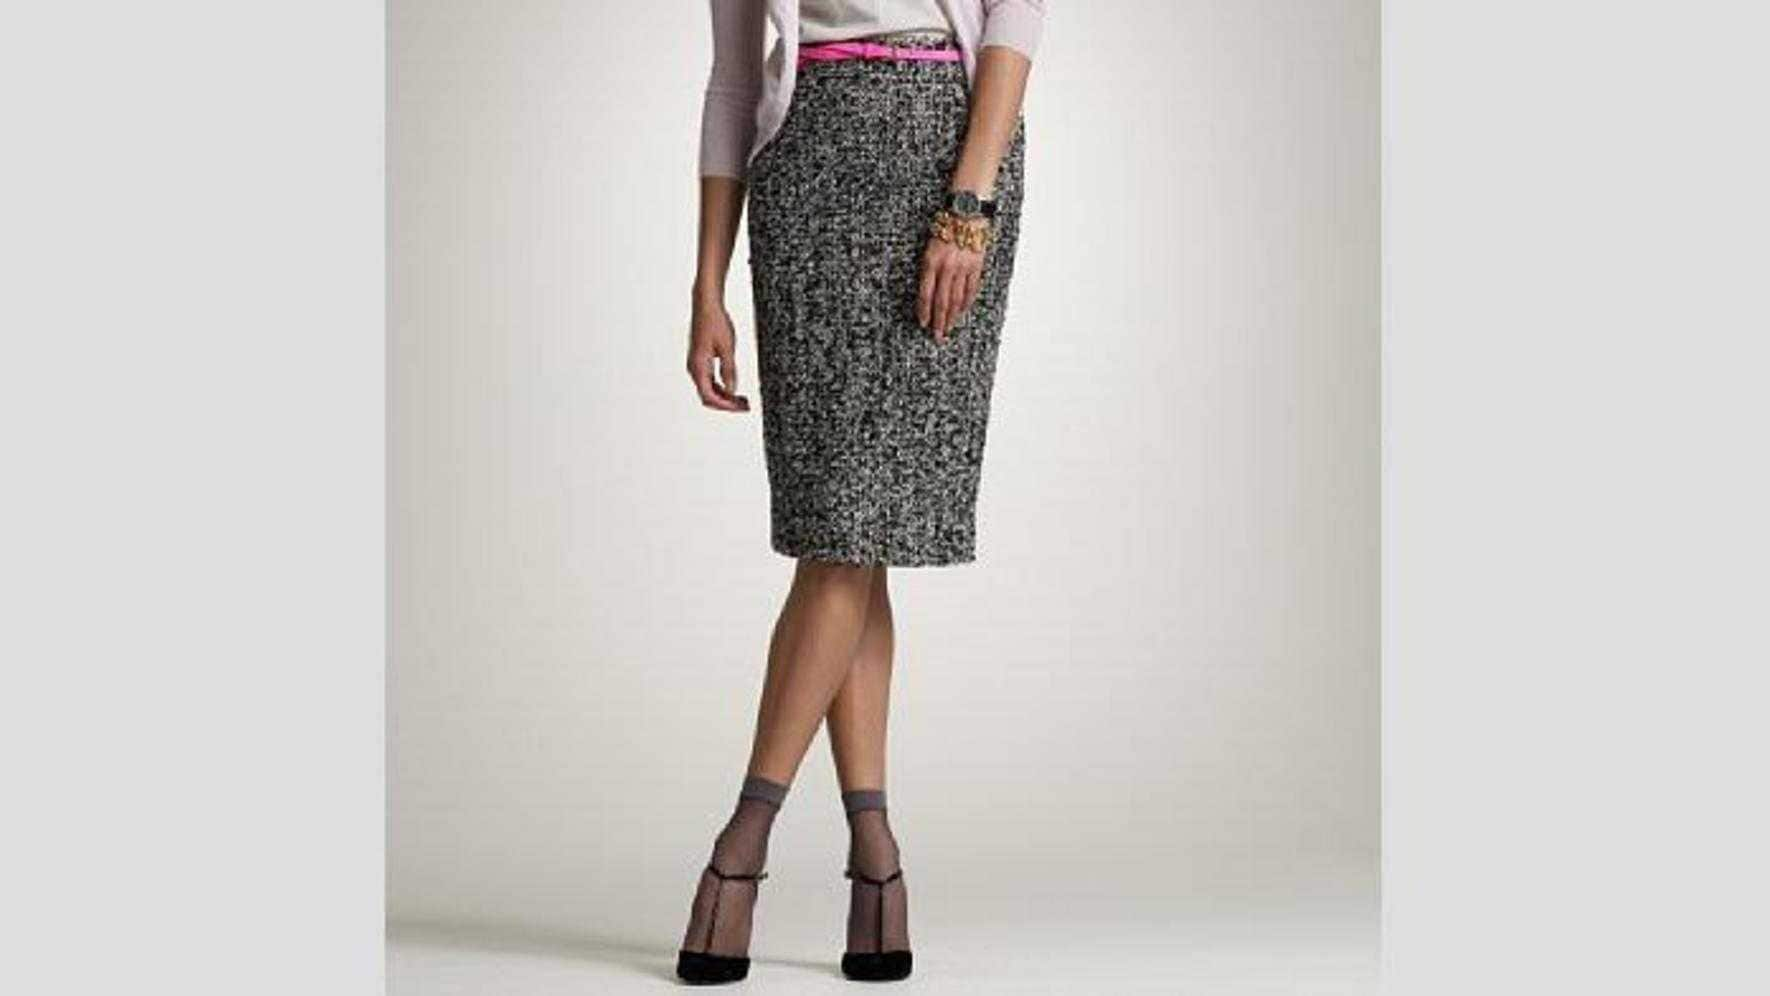 JCrew Catalogue ankle stocking with heels